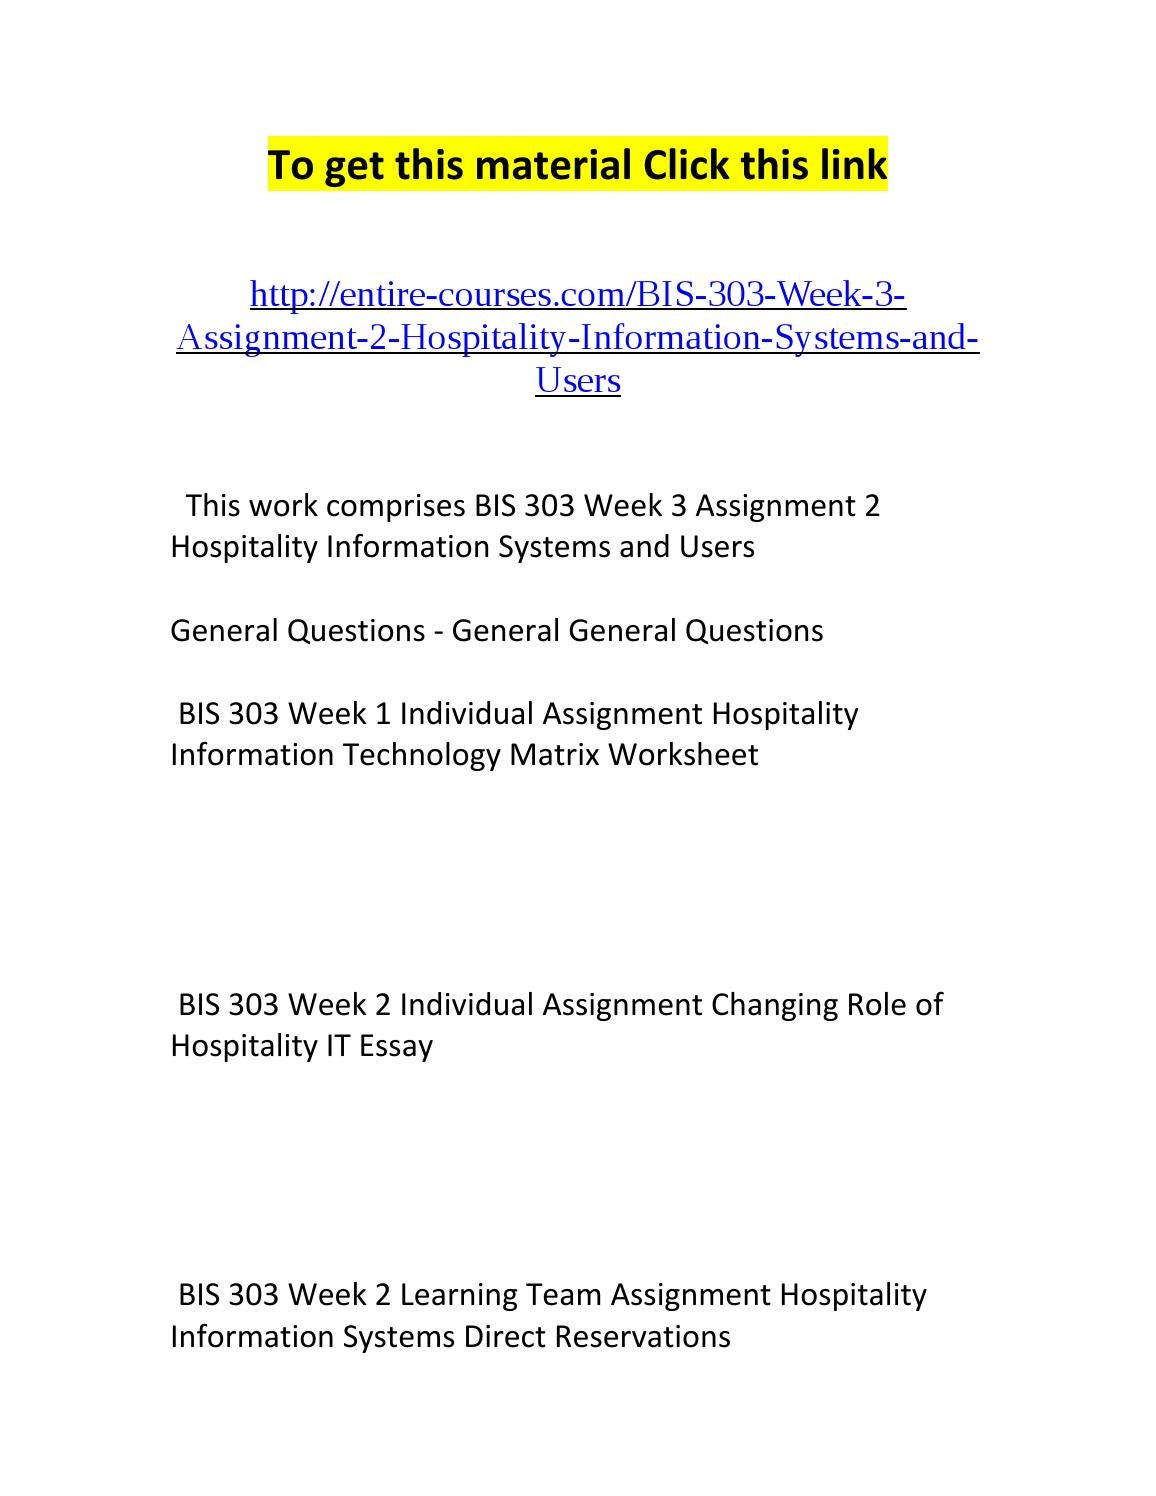 bis assignment Assignment of rights  wwwbisgovuk and copies of the document may be made without seeking permission other versions of the document (in braille, other.